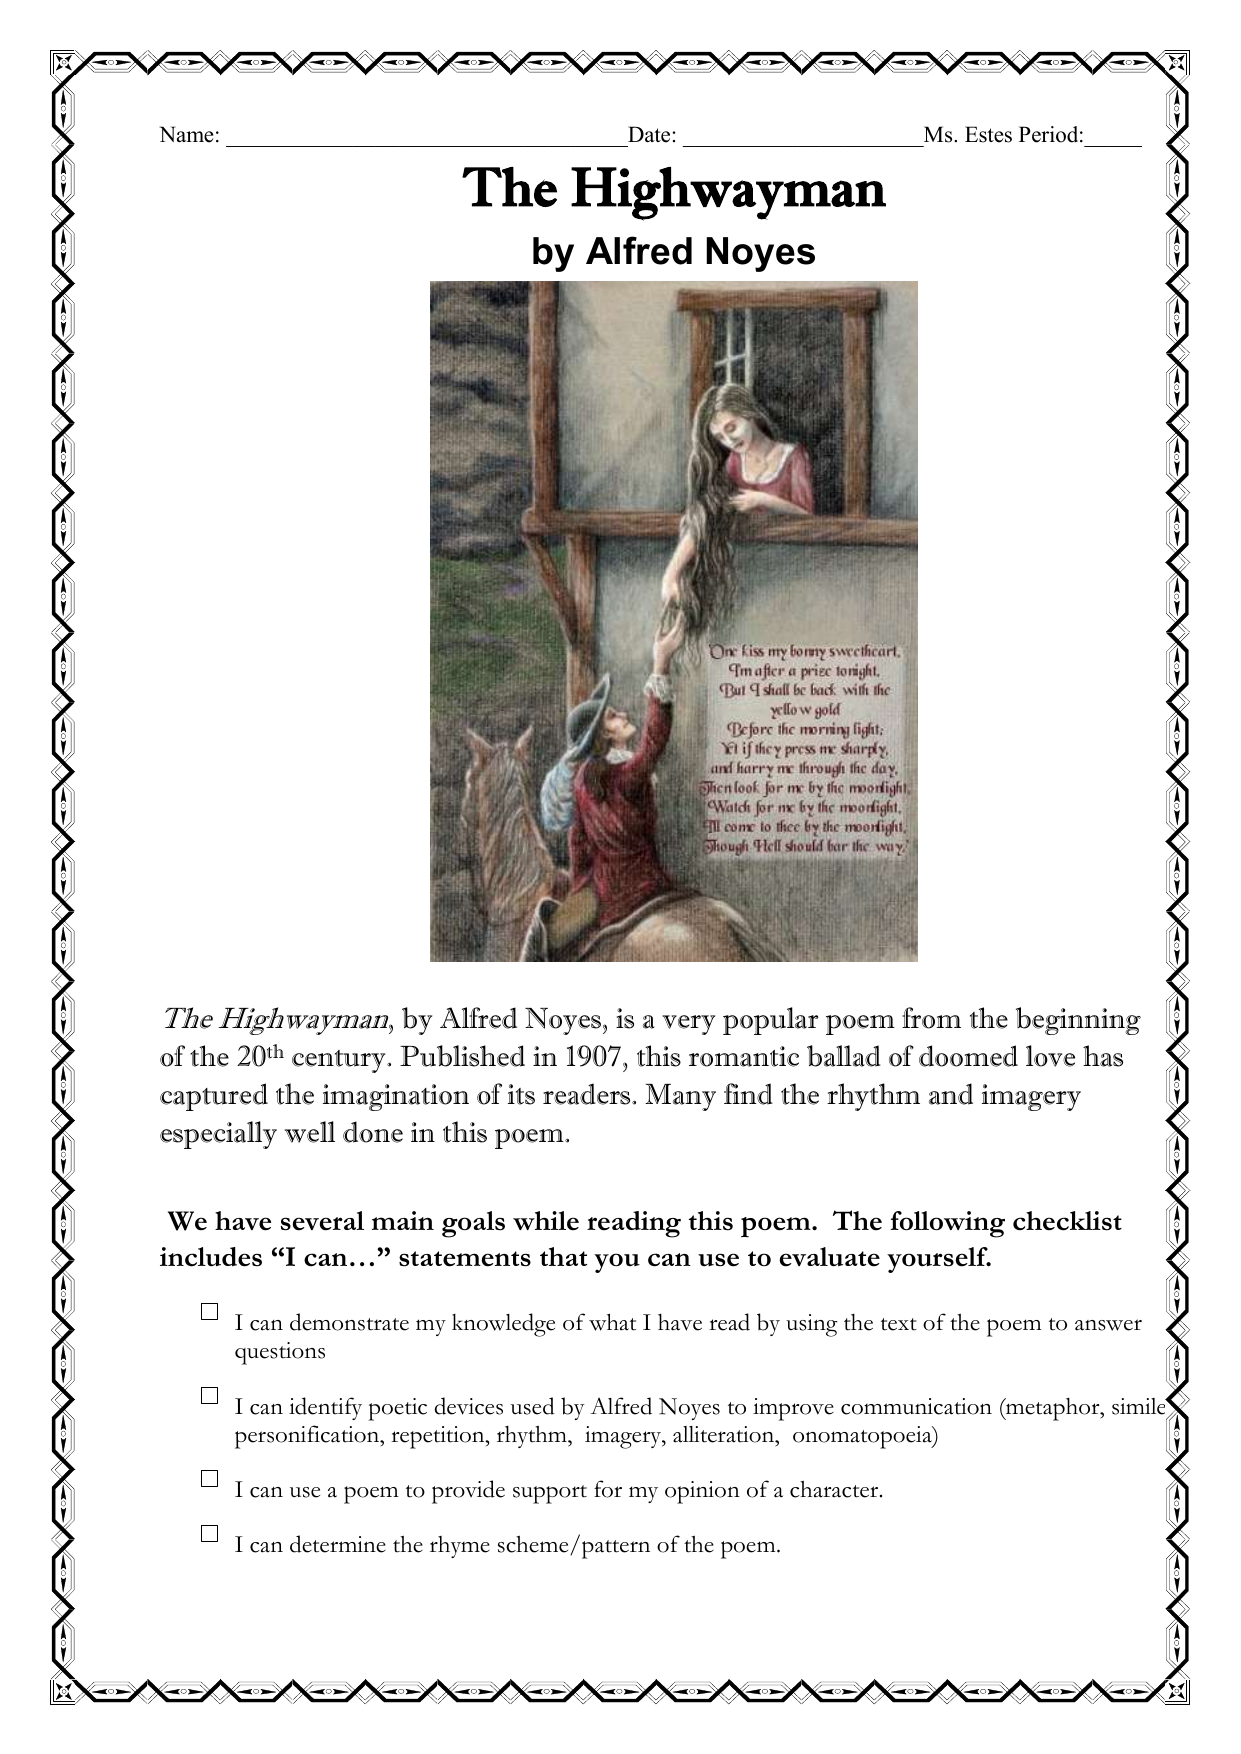 the highwayman poem questions